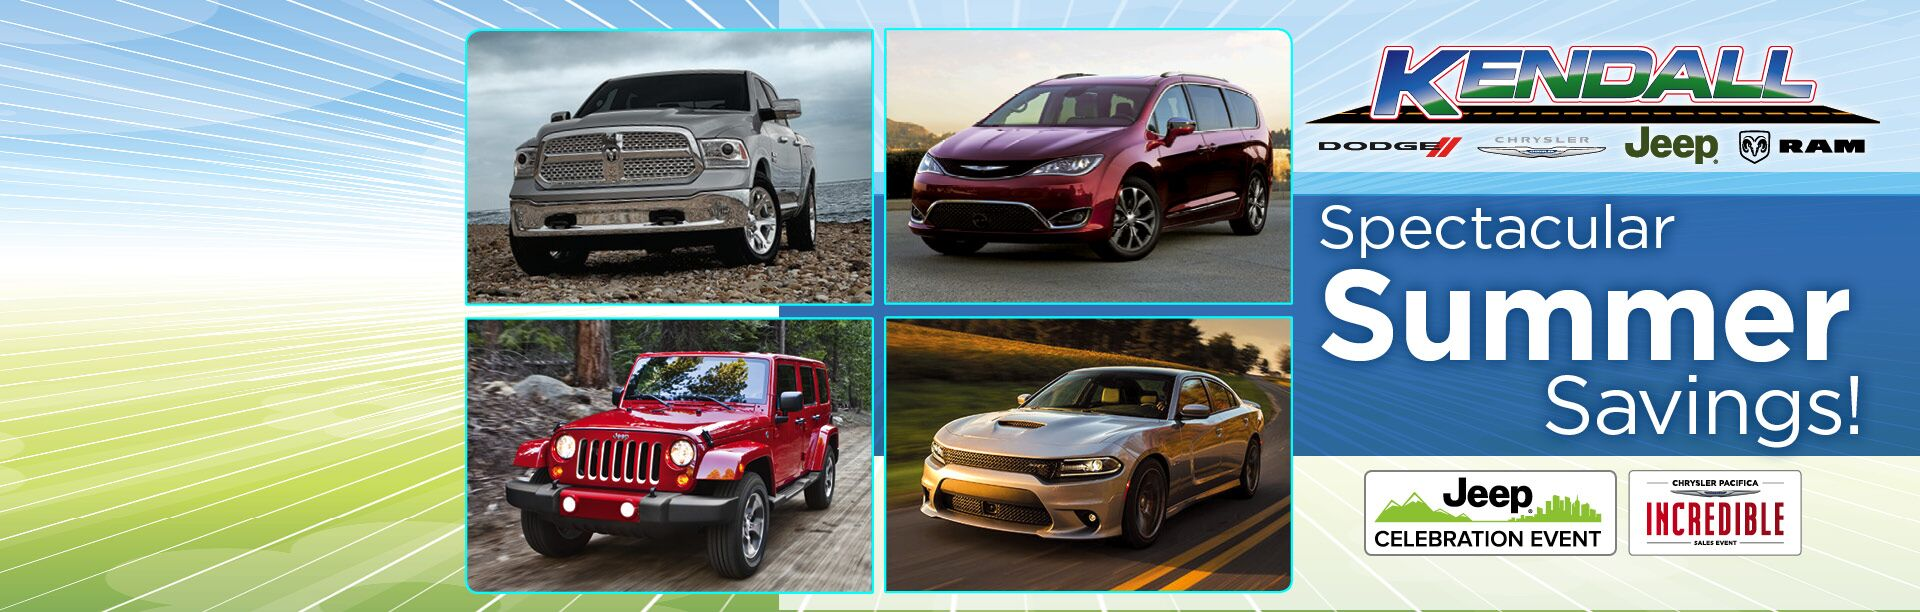 june offers chrysler carsdirect best deals jeep articles img renegade lease